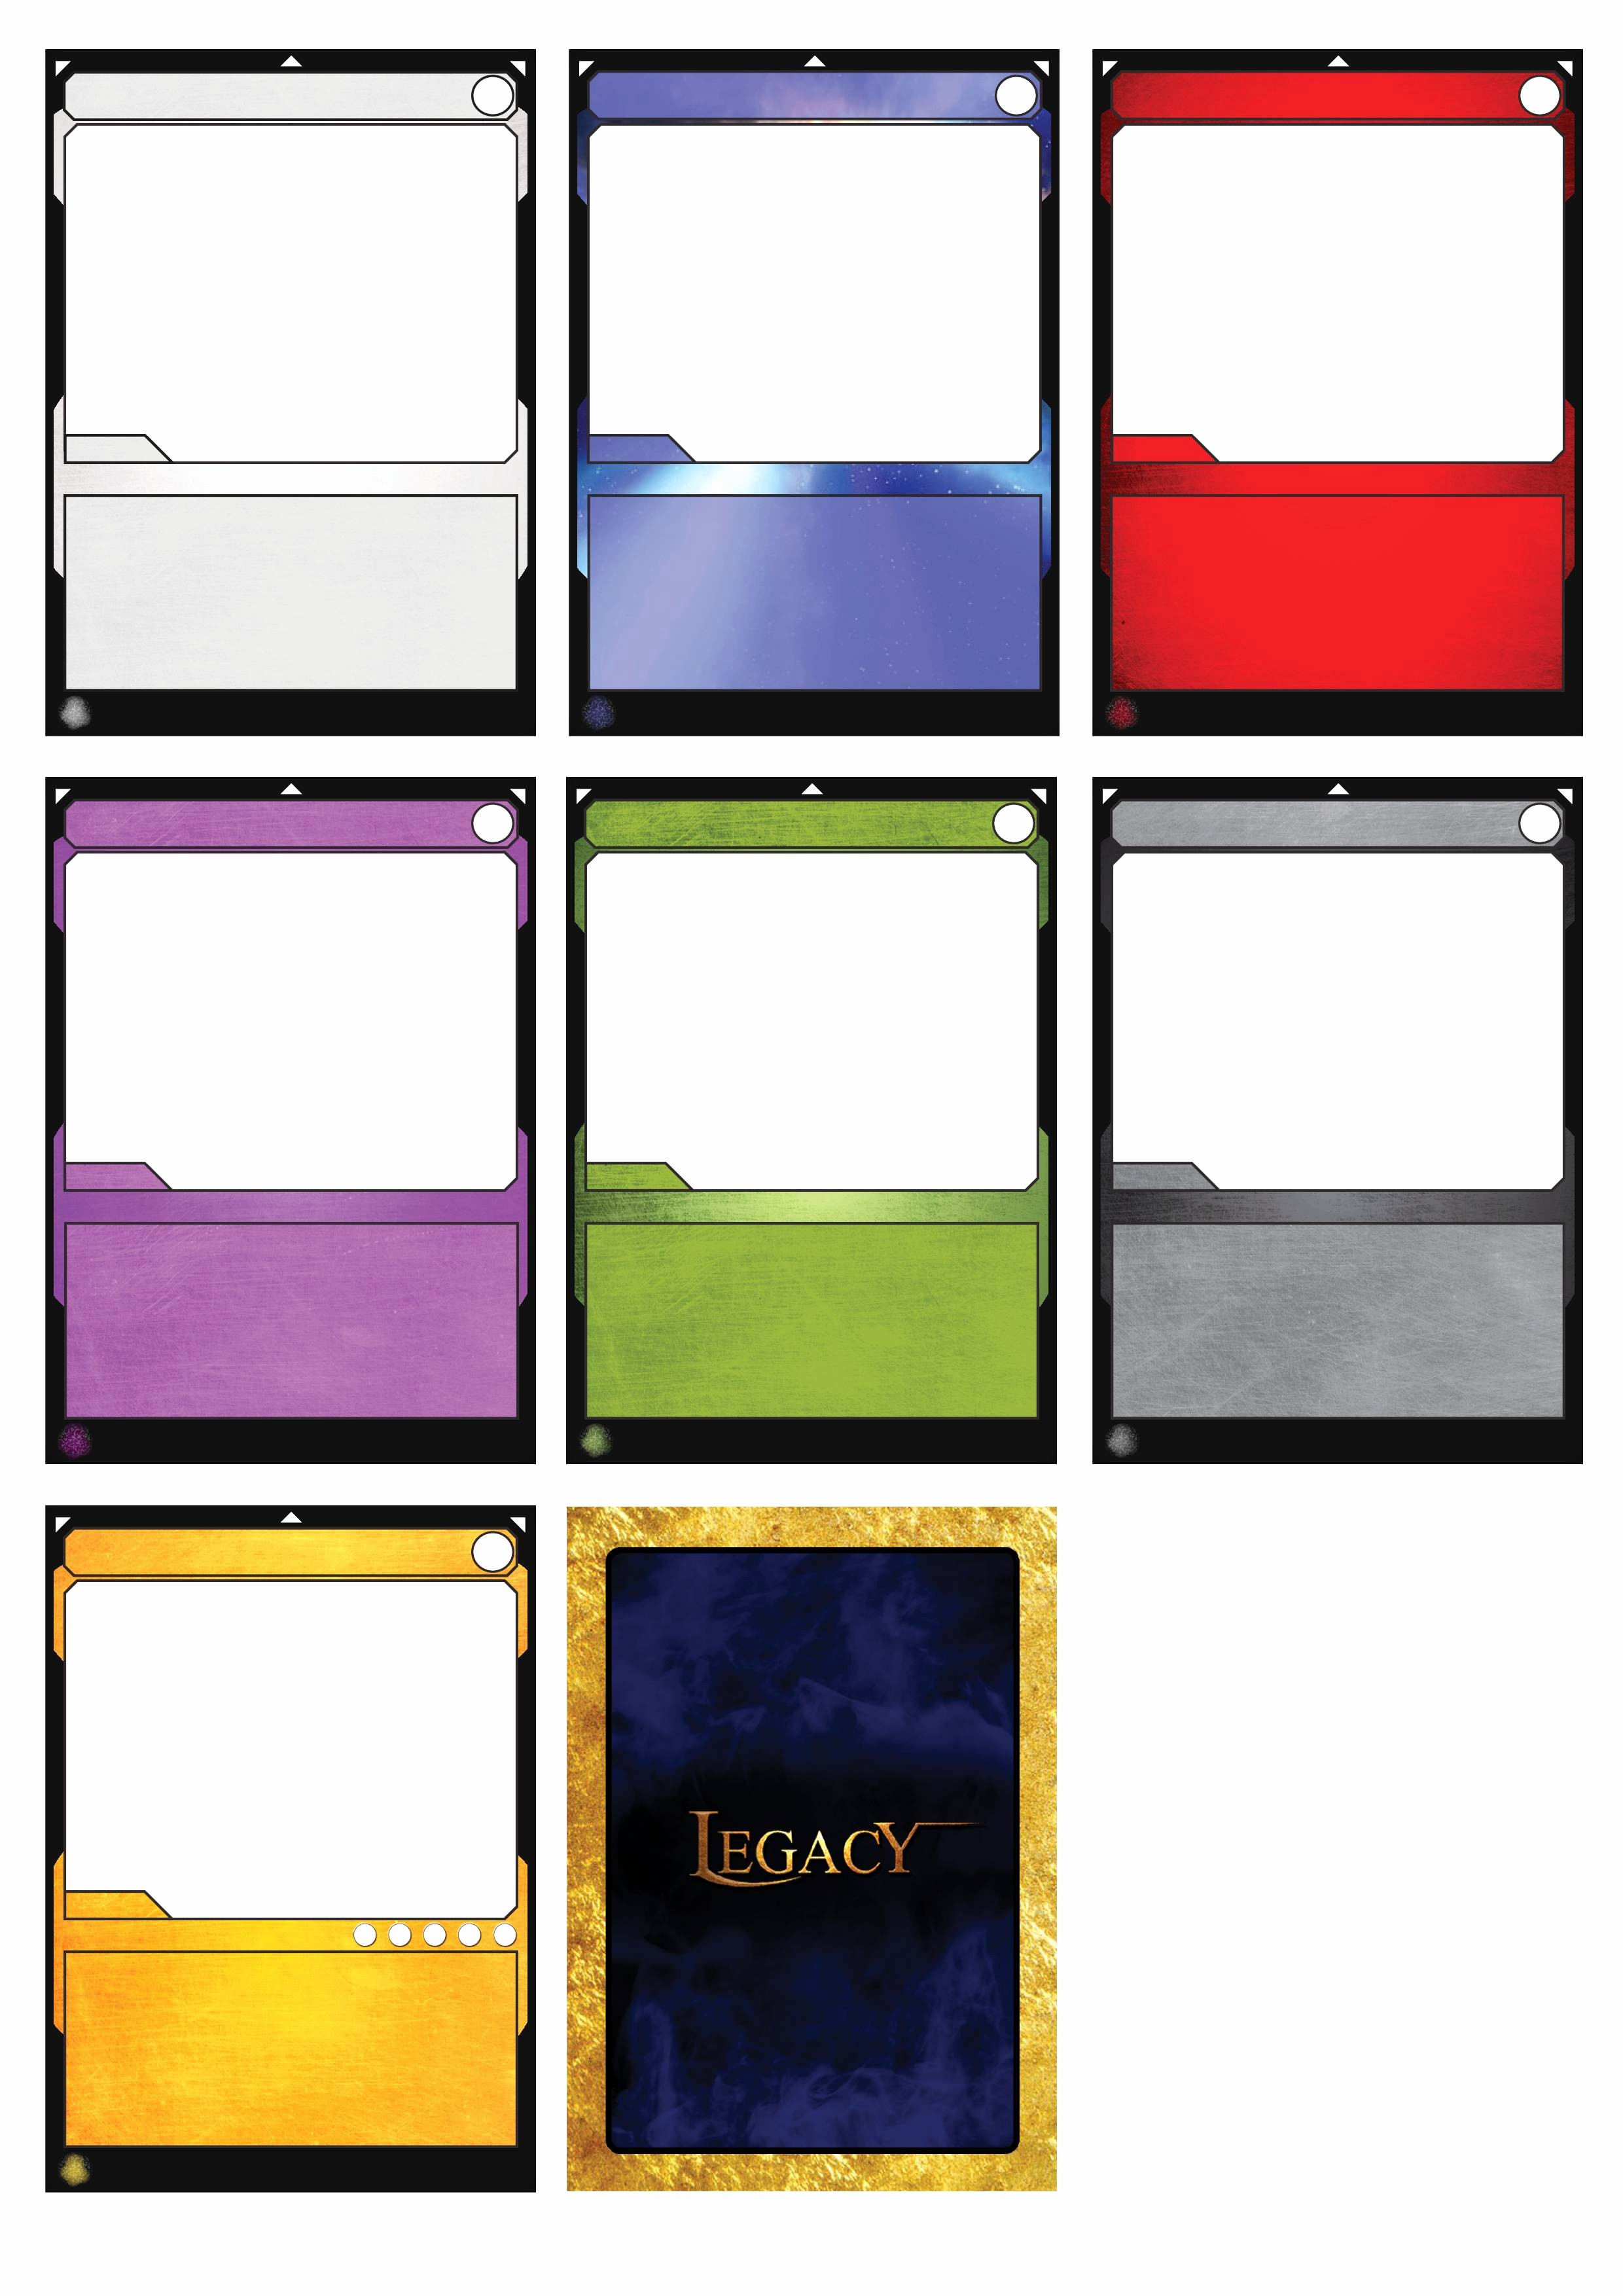 Free Card Templates for Word Elegant Best S Of Game Card Template Board Game Blank Card